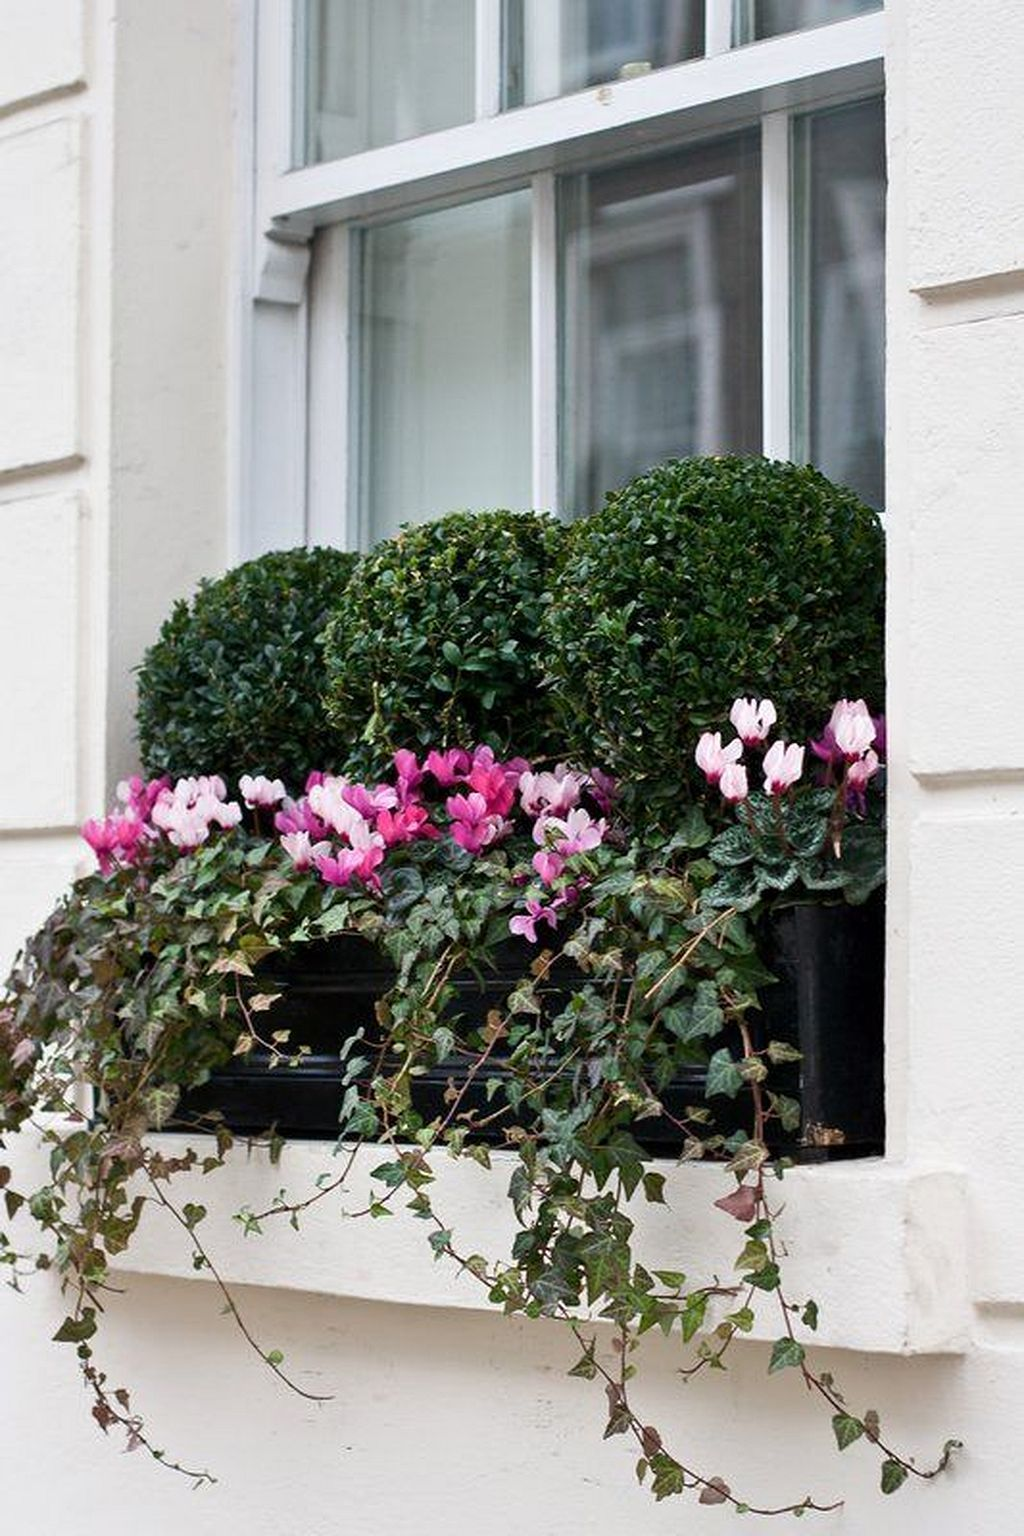 Window box ideas without flowers  cool  awesome flowering window boxes ideas gardenmagz